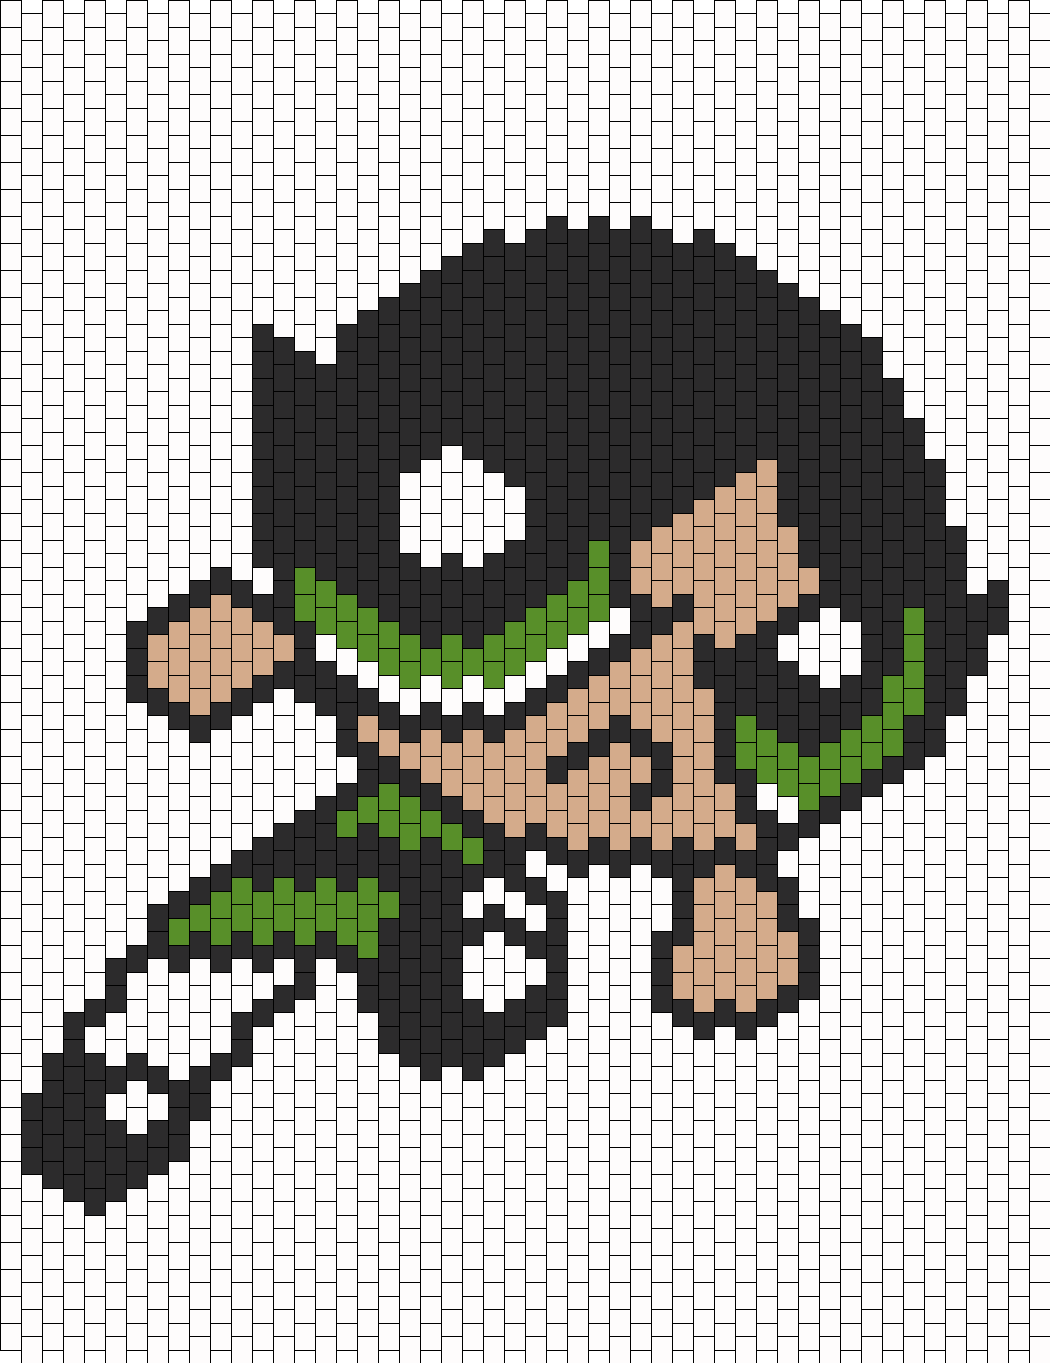 Buttercup from The Powerpuff Girls